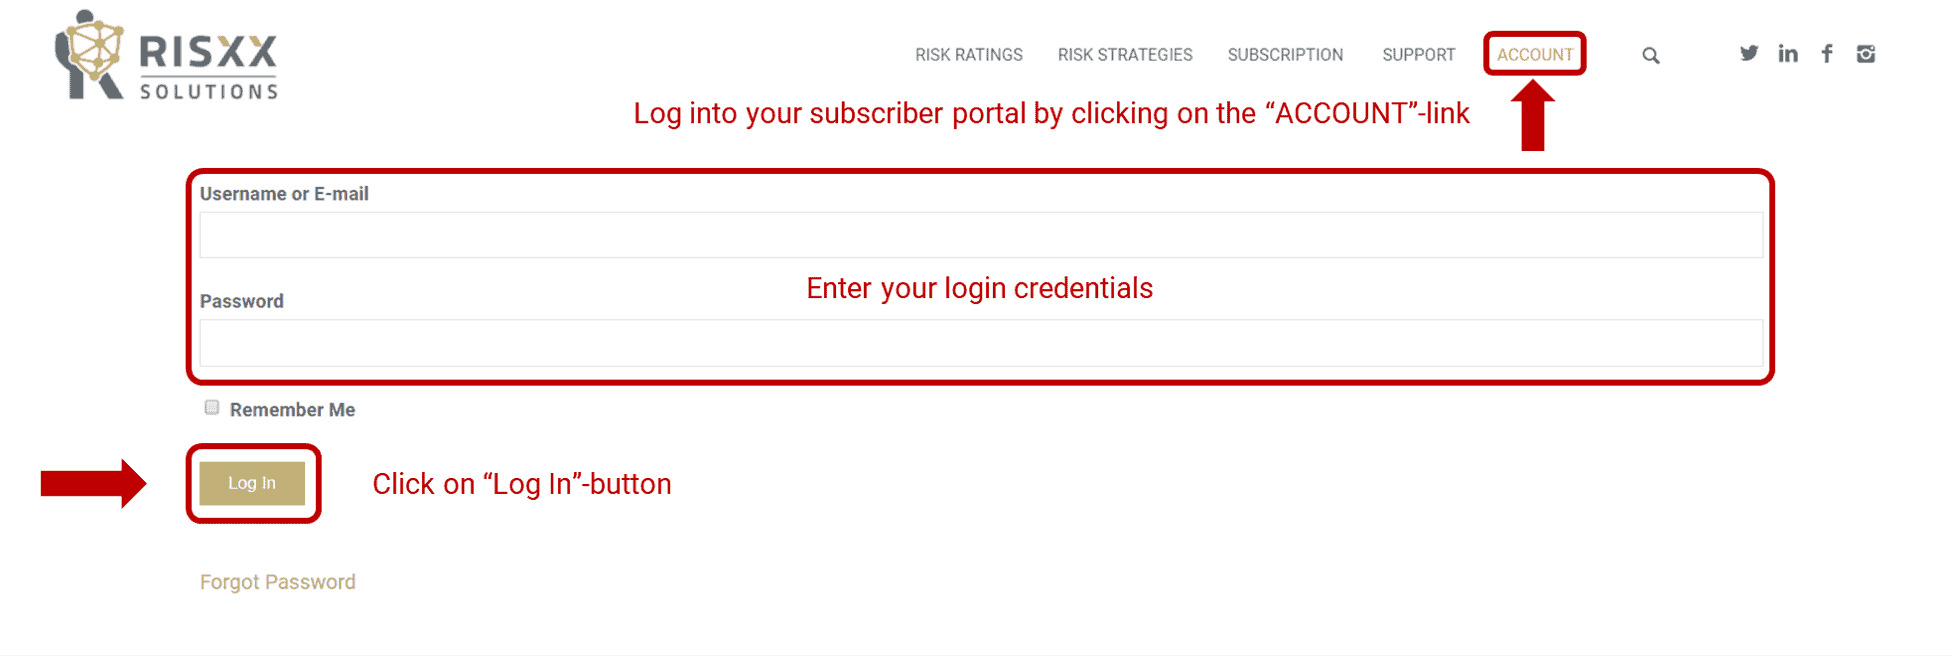 RISXX risk solutions – Log into your subscriber portal by clicking on the account link